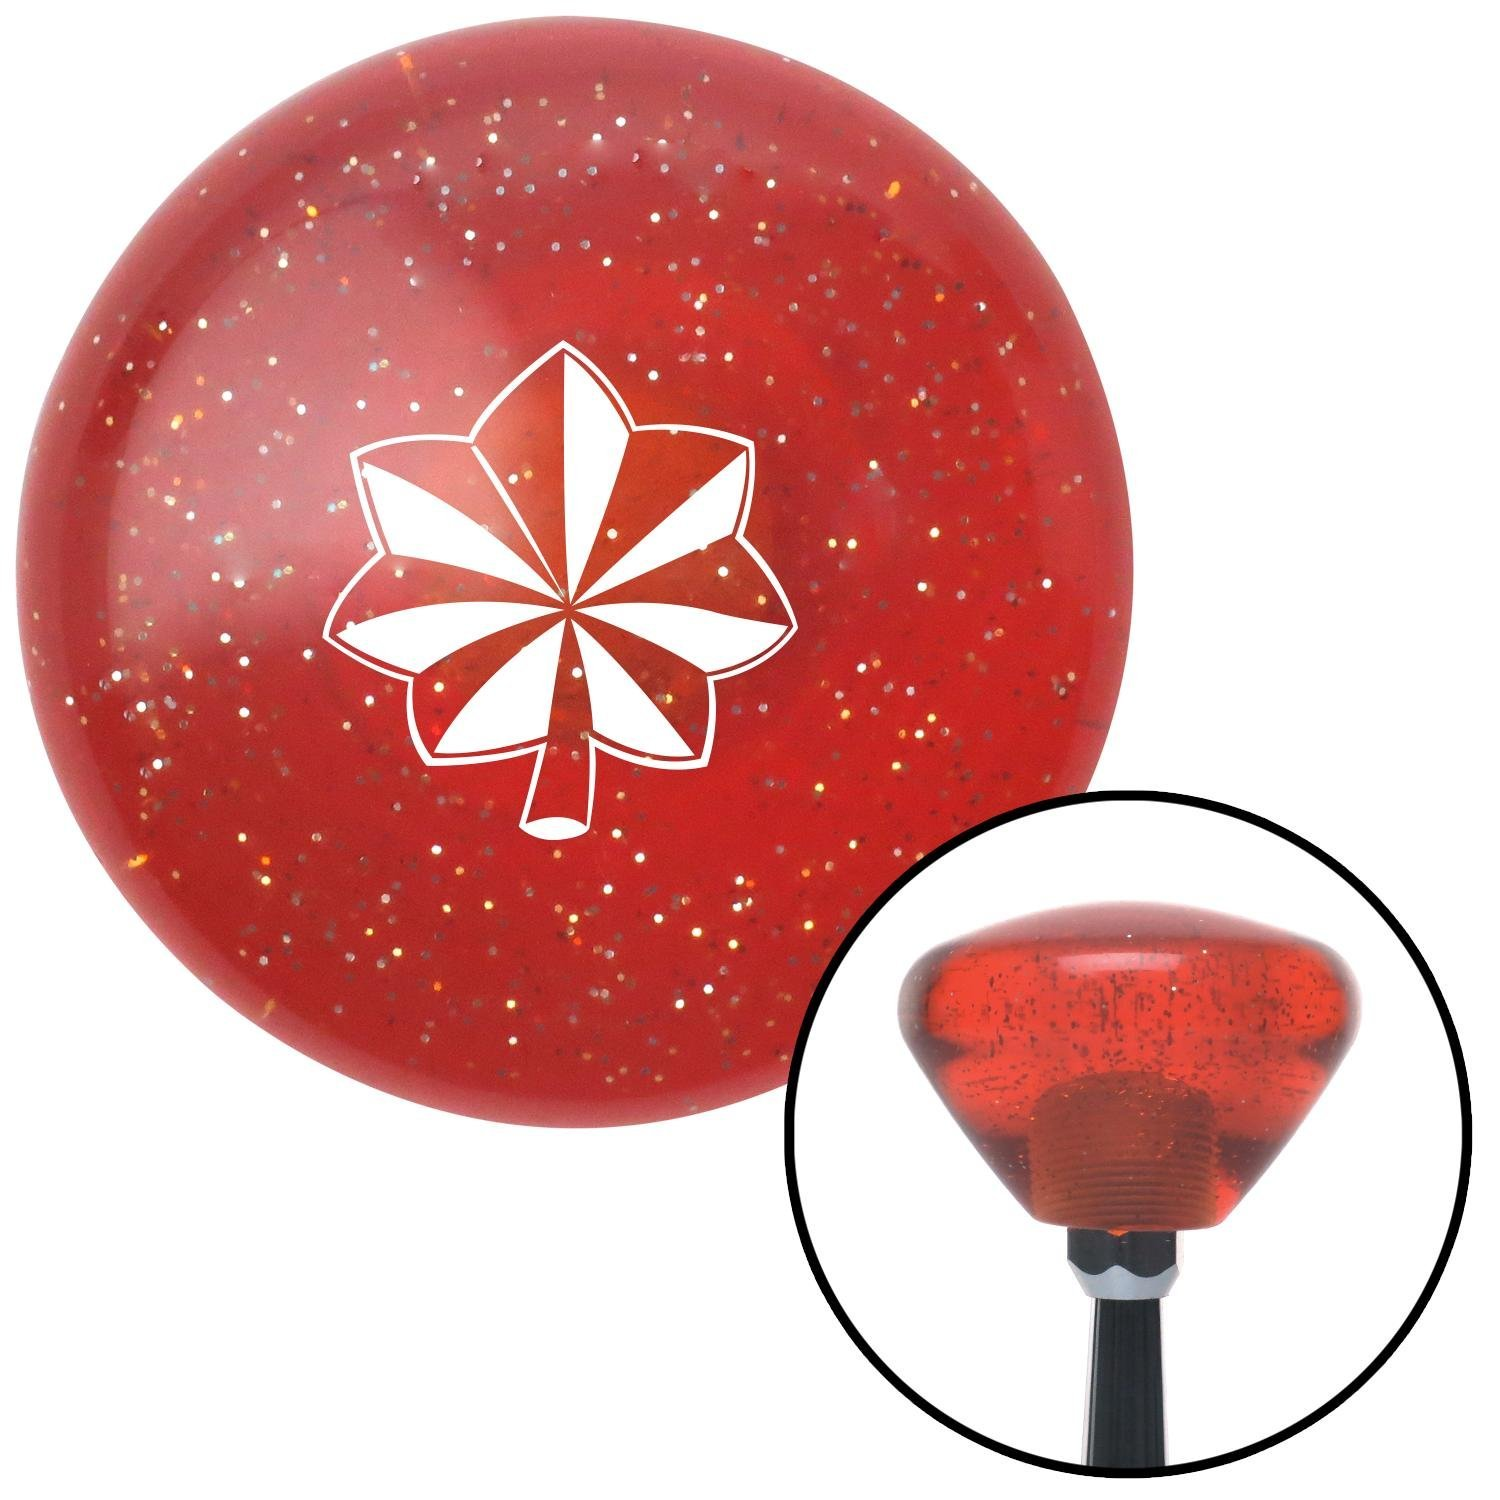 White Officer 04 and 05 American Shifter 181776 Orange Retro Metal Flake Shift Knob with M16 x 1.5 Insert